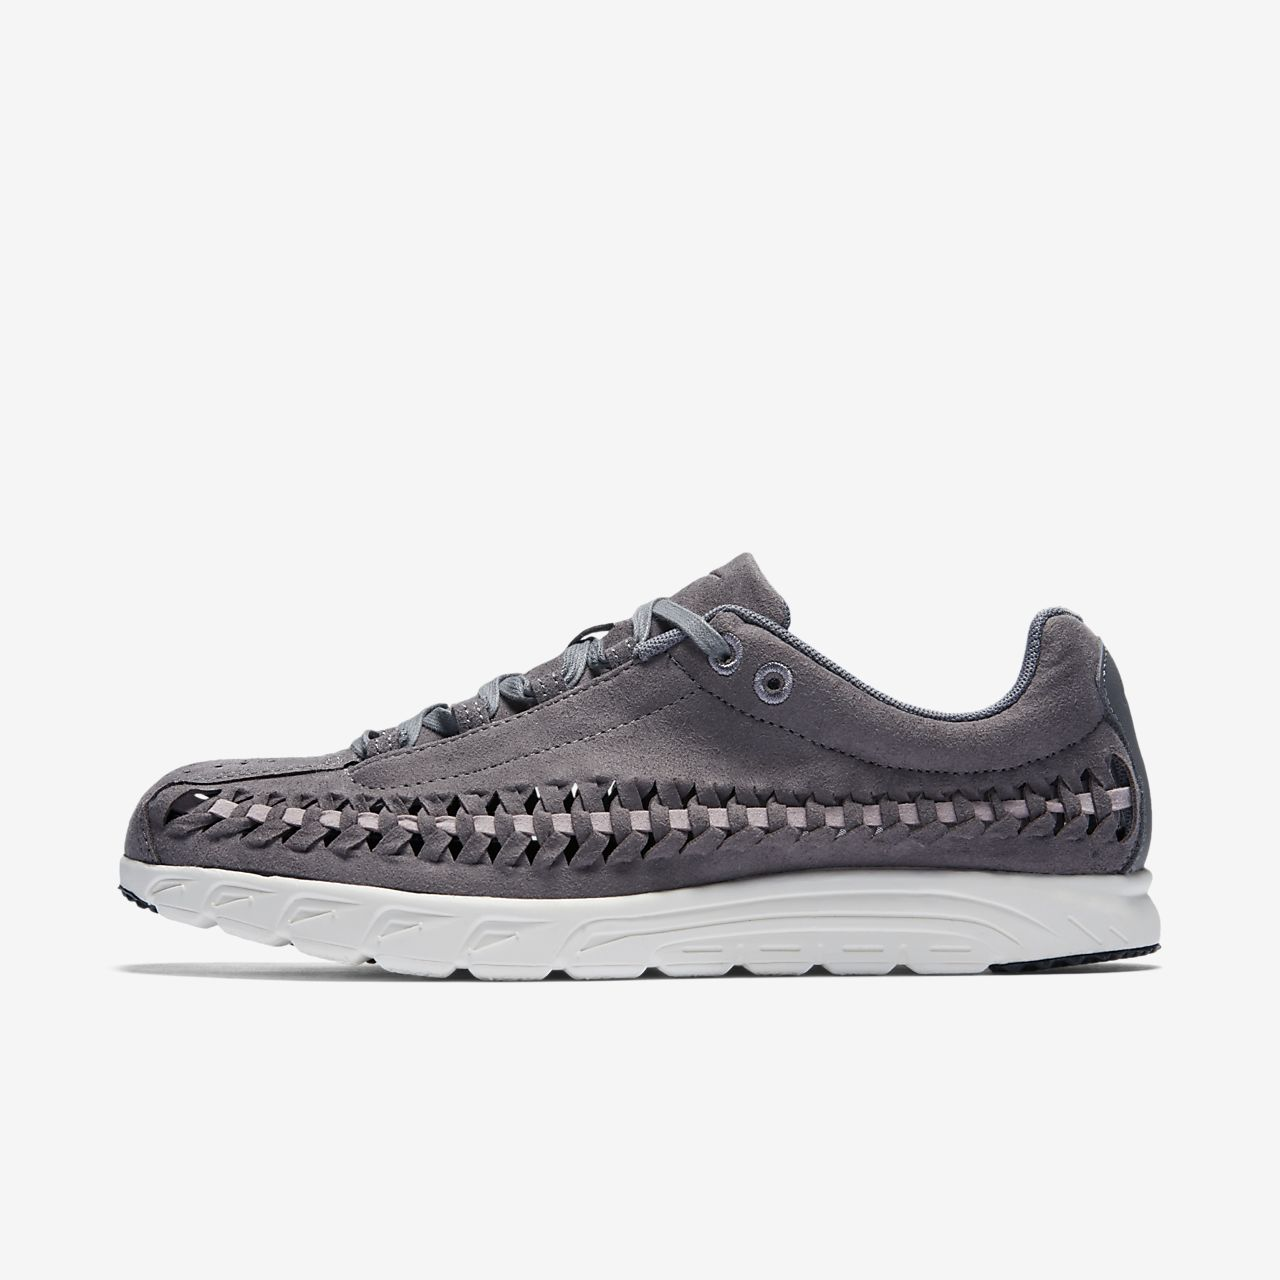 buy cheap for cheap Nike Mayfly woven sneakers pick a best cheap price discount codes really cheap N8i80z